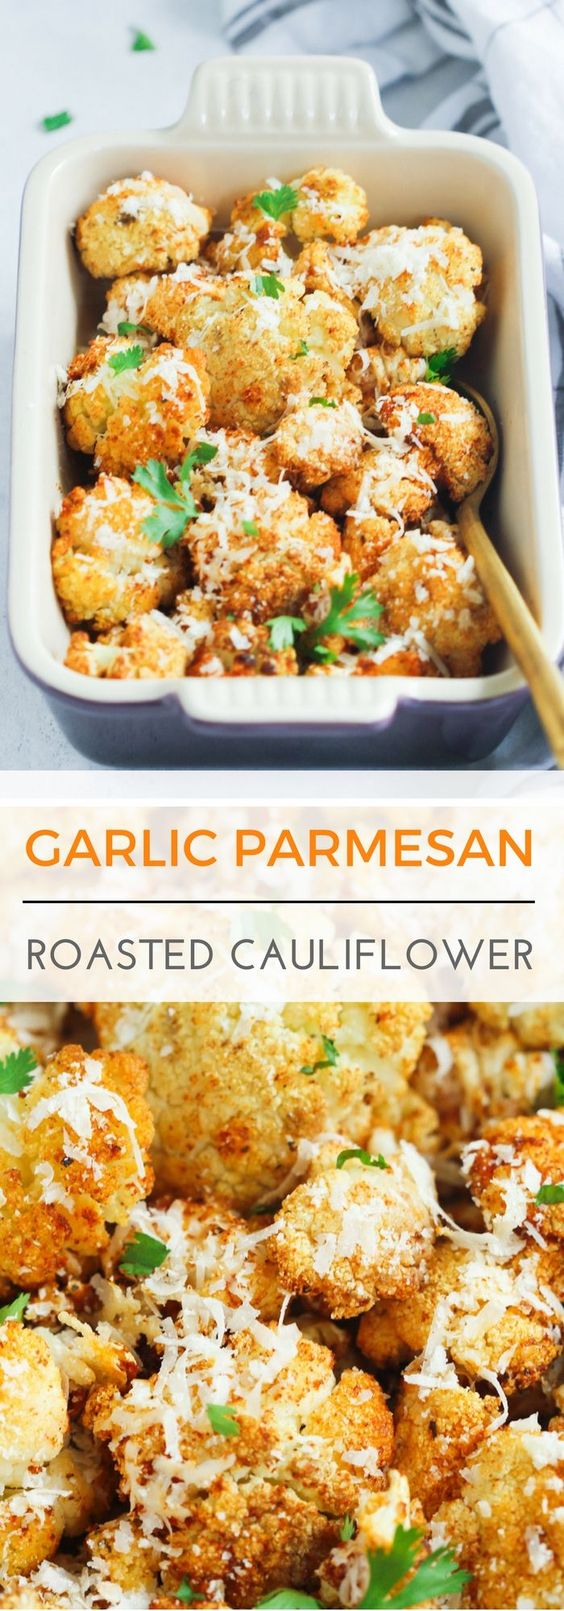 Garlic Parmesan Roasted Cauliflower.